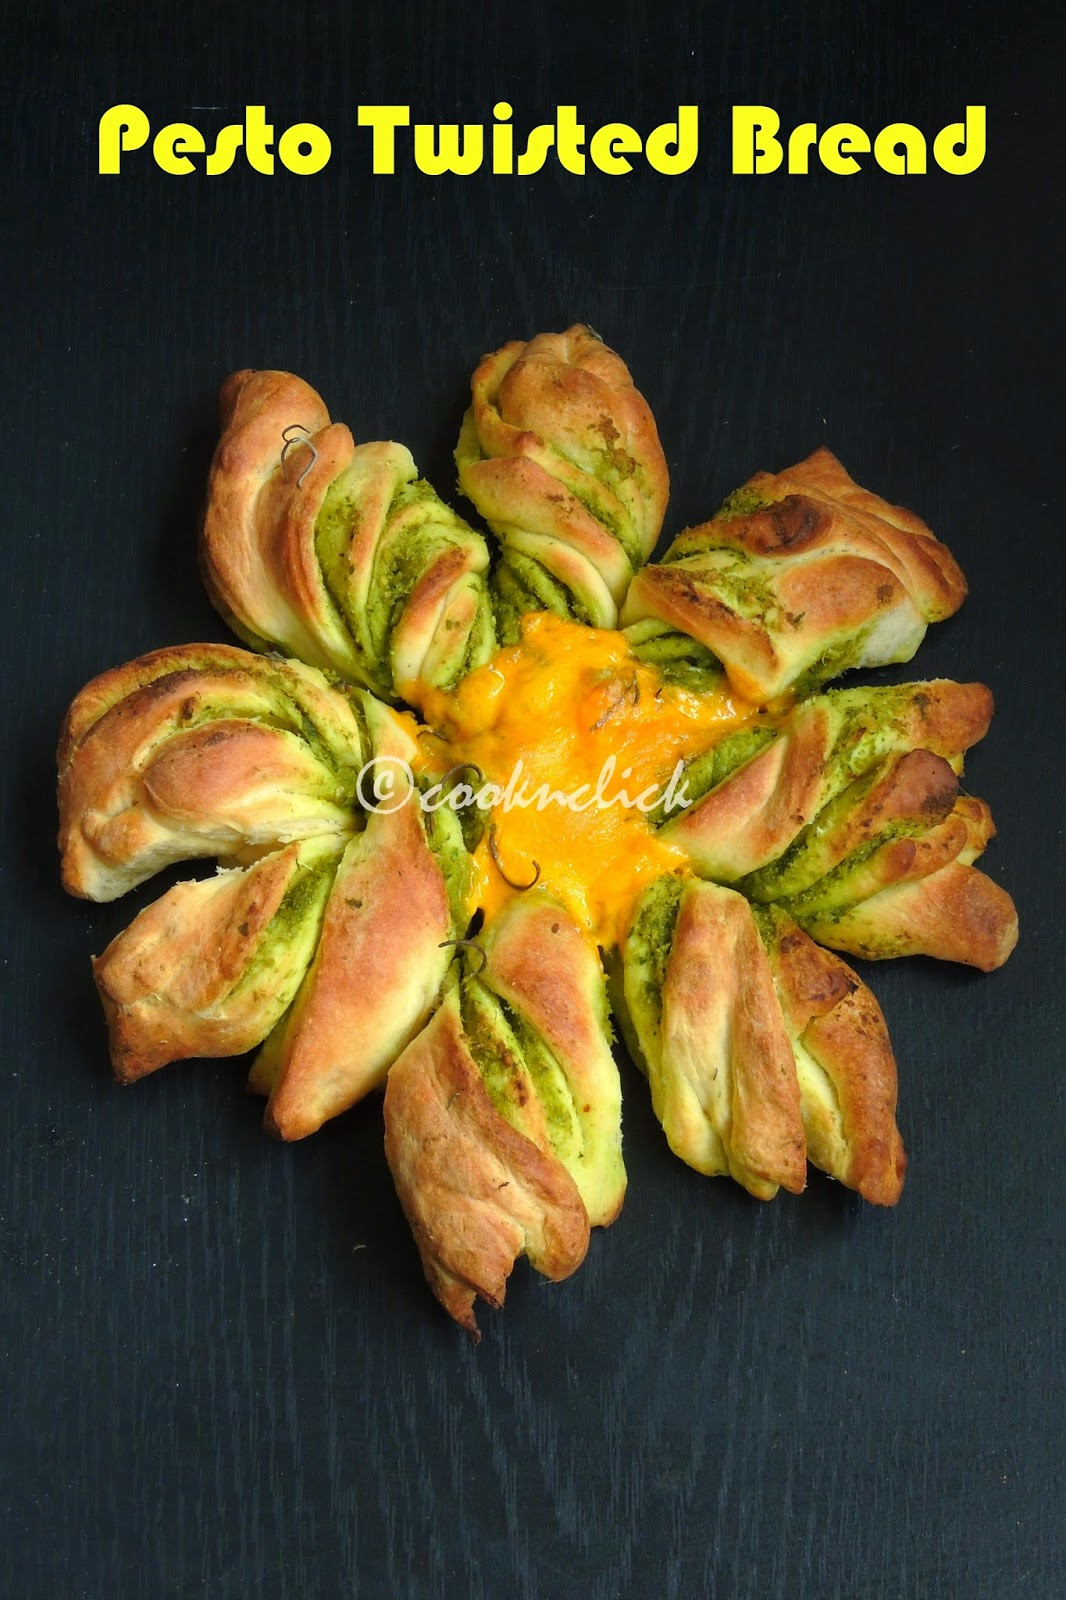 Pesto twisted bread